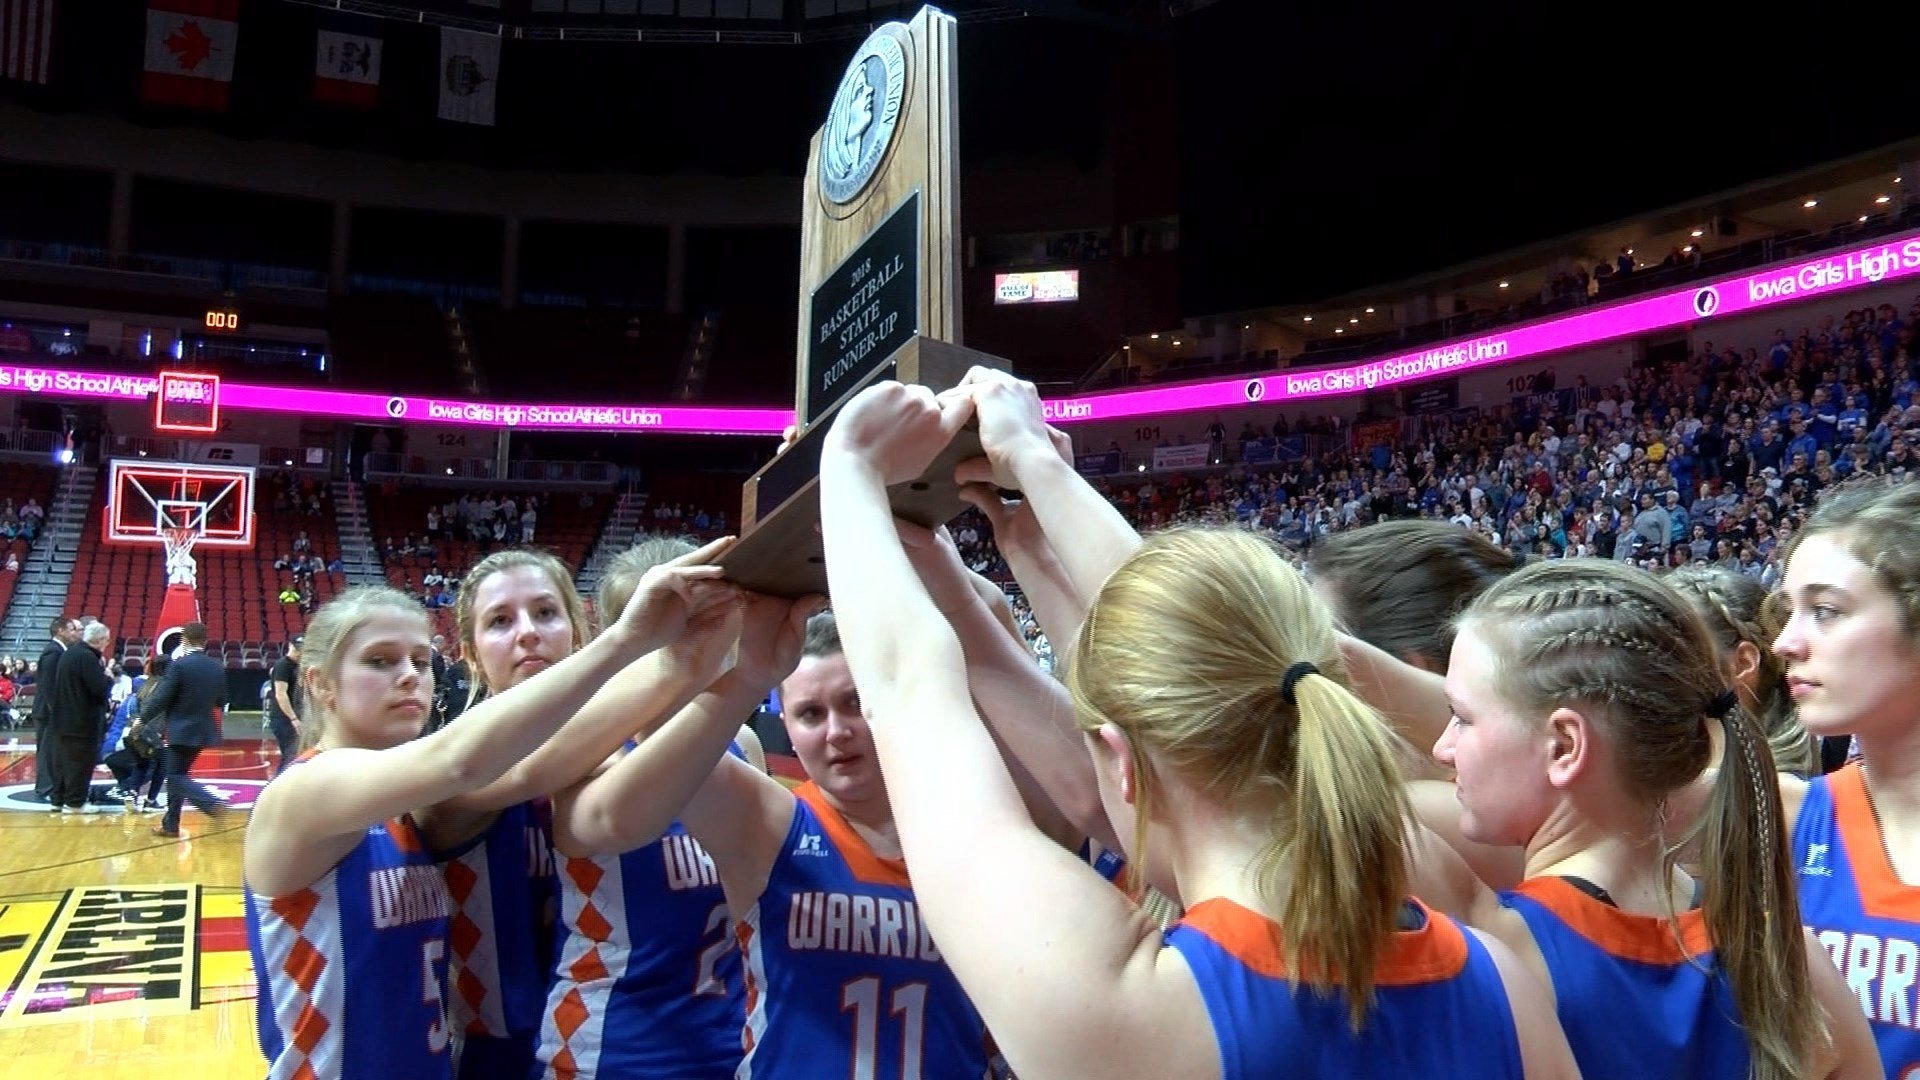 Sioux Center fell to Crestwood in the Class 3A state championship game,  73-48.